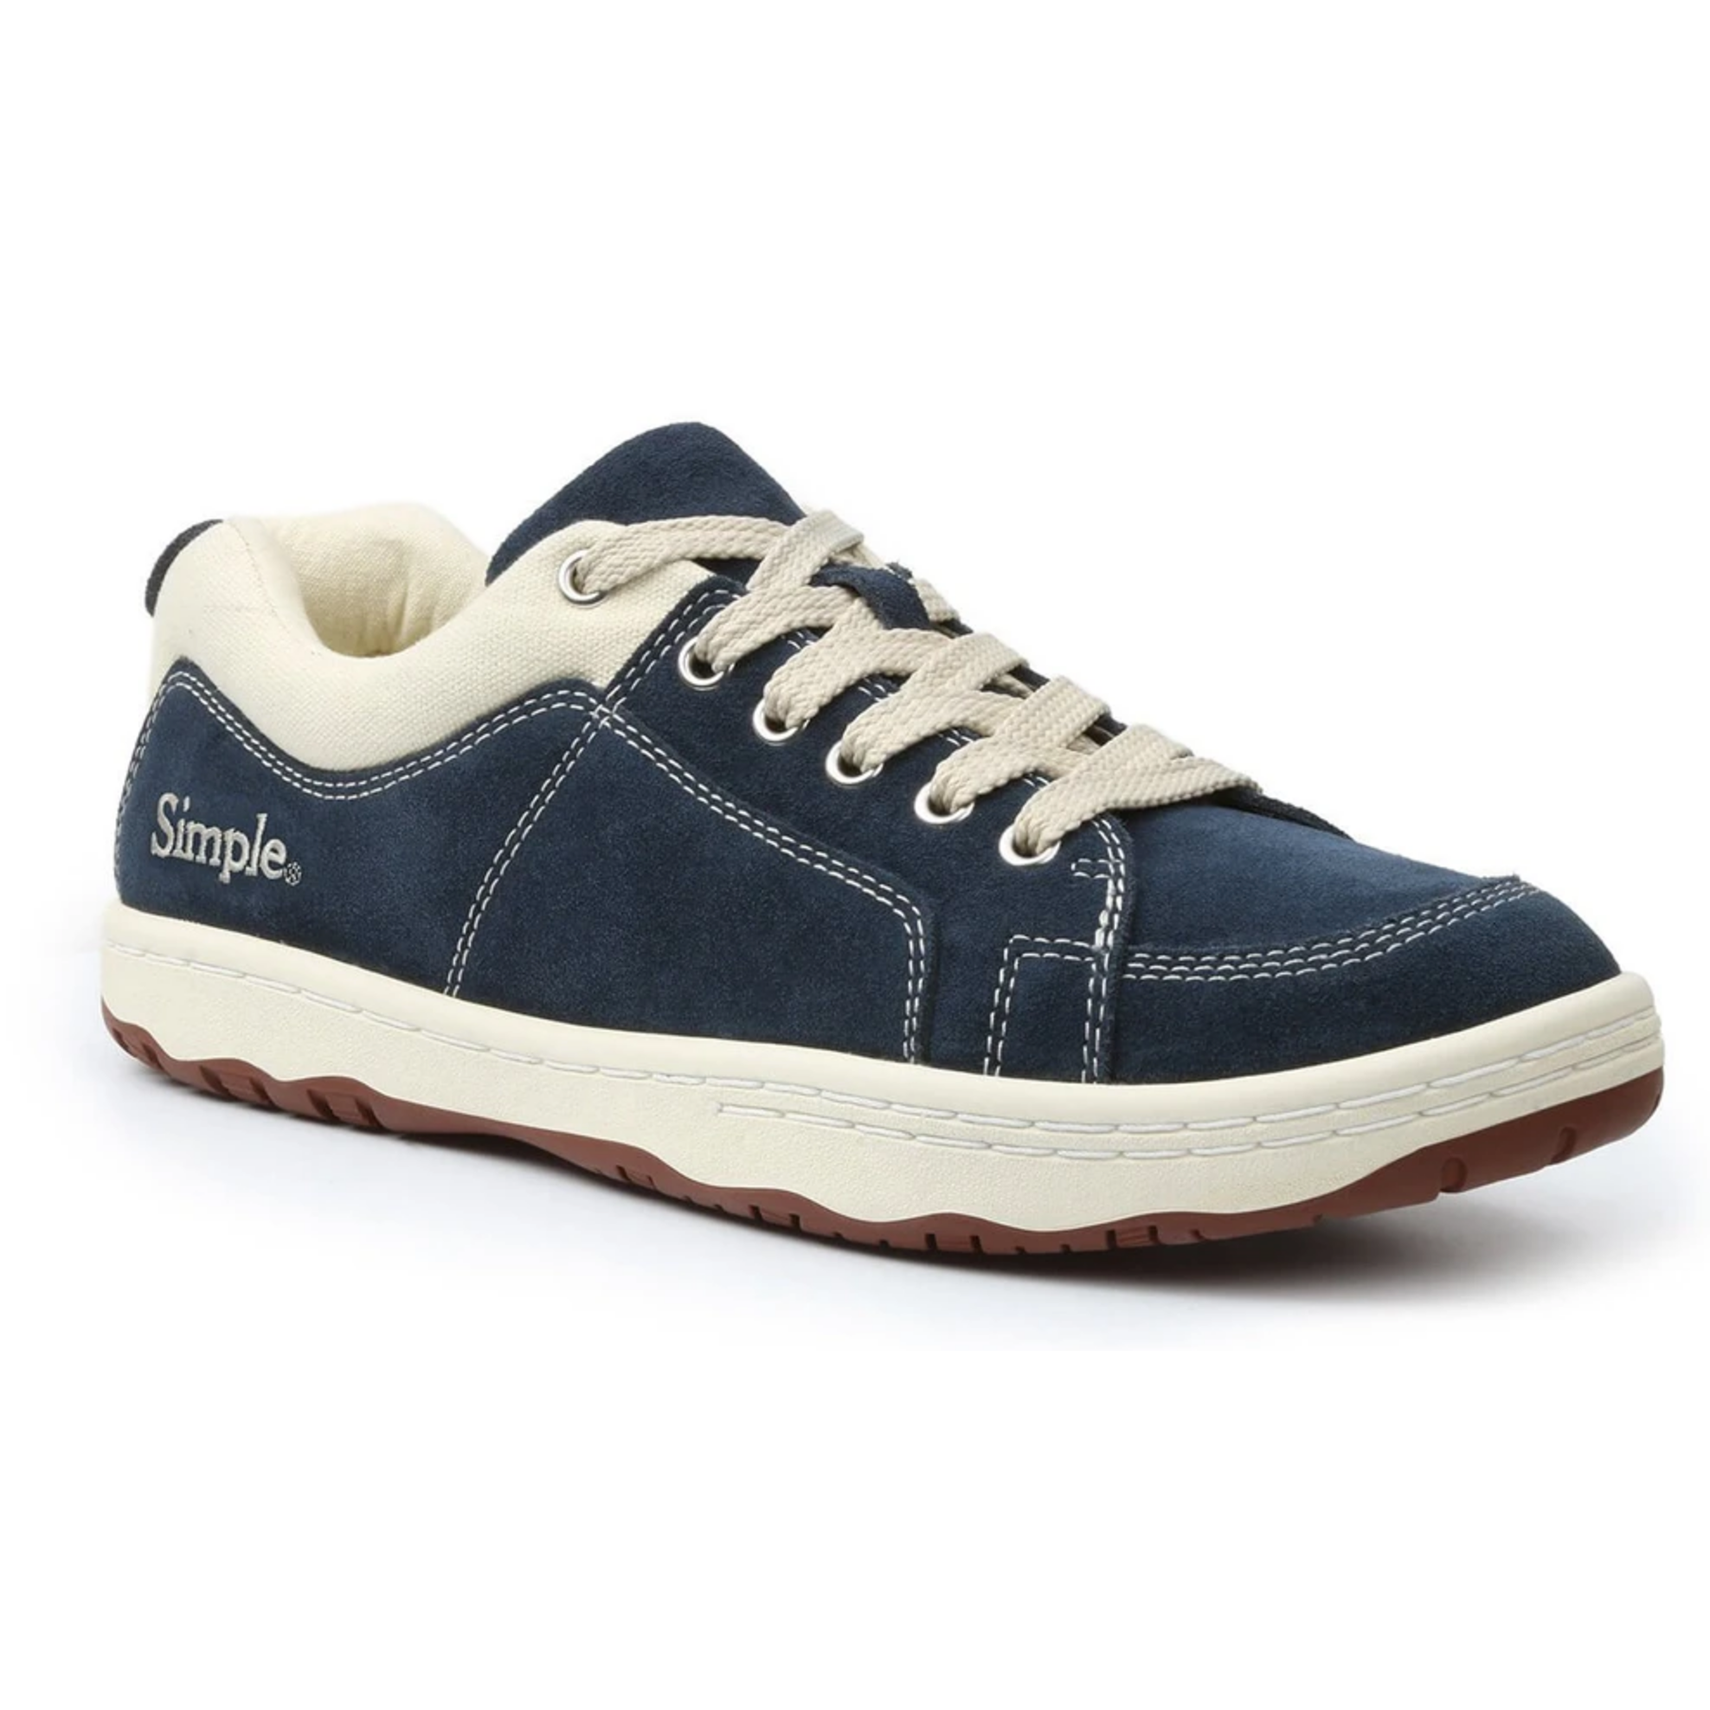 Simple Shoes OS Sneaker, Suede, Navy